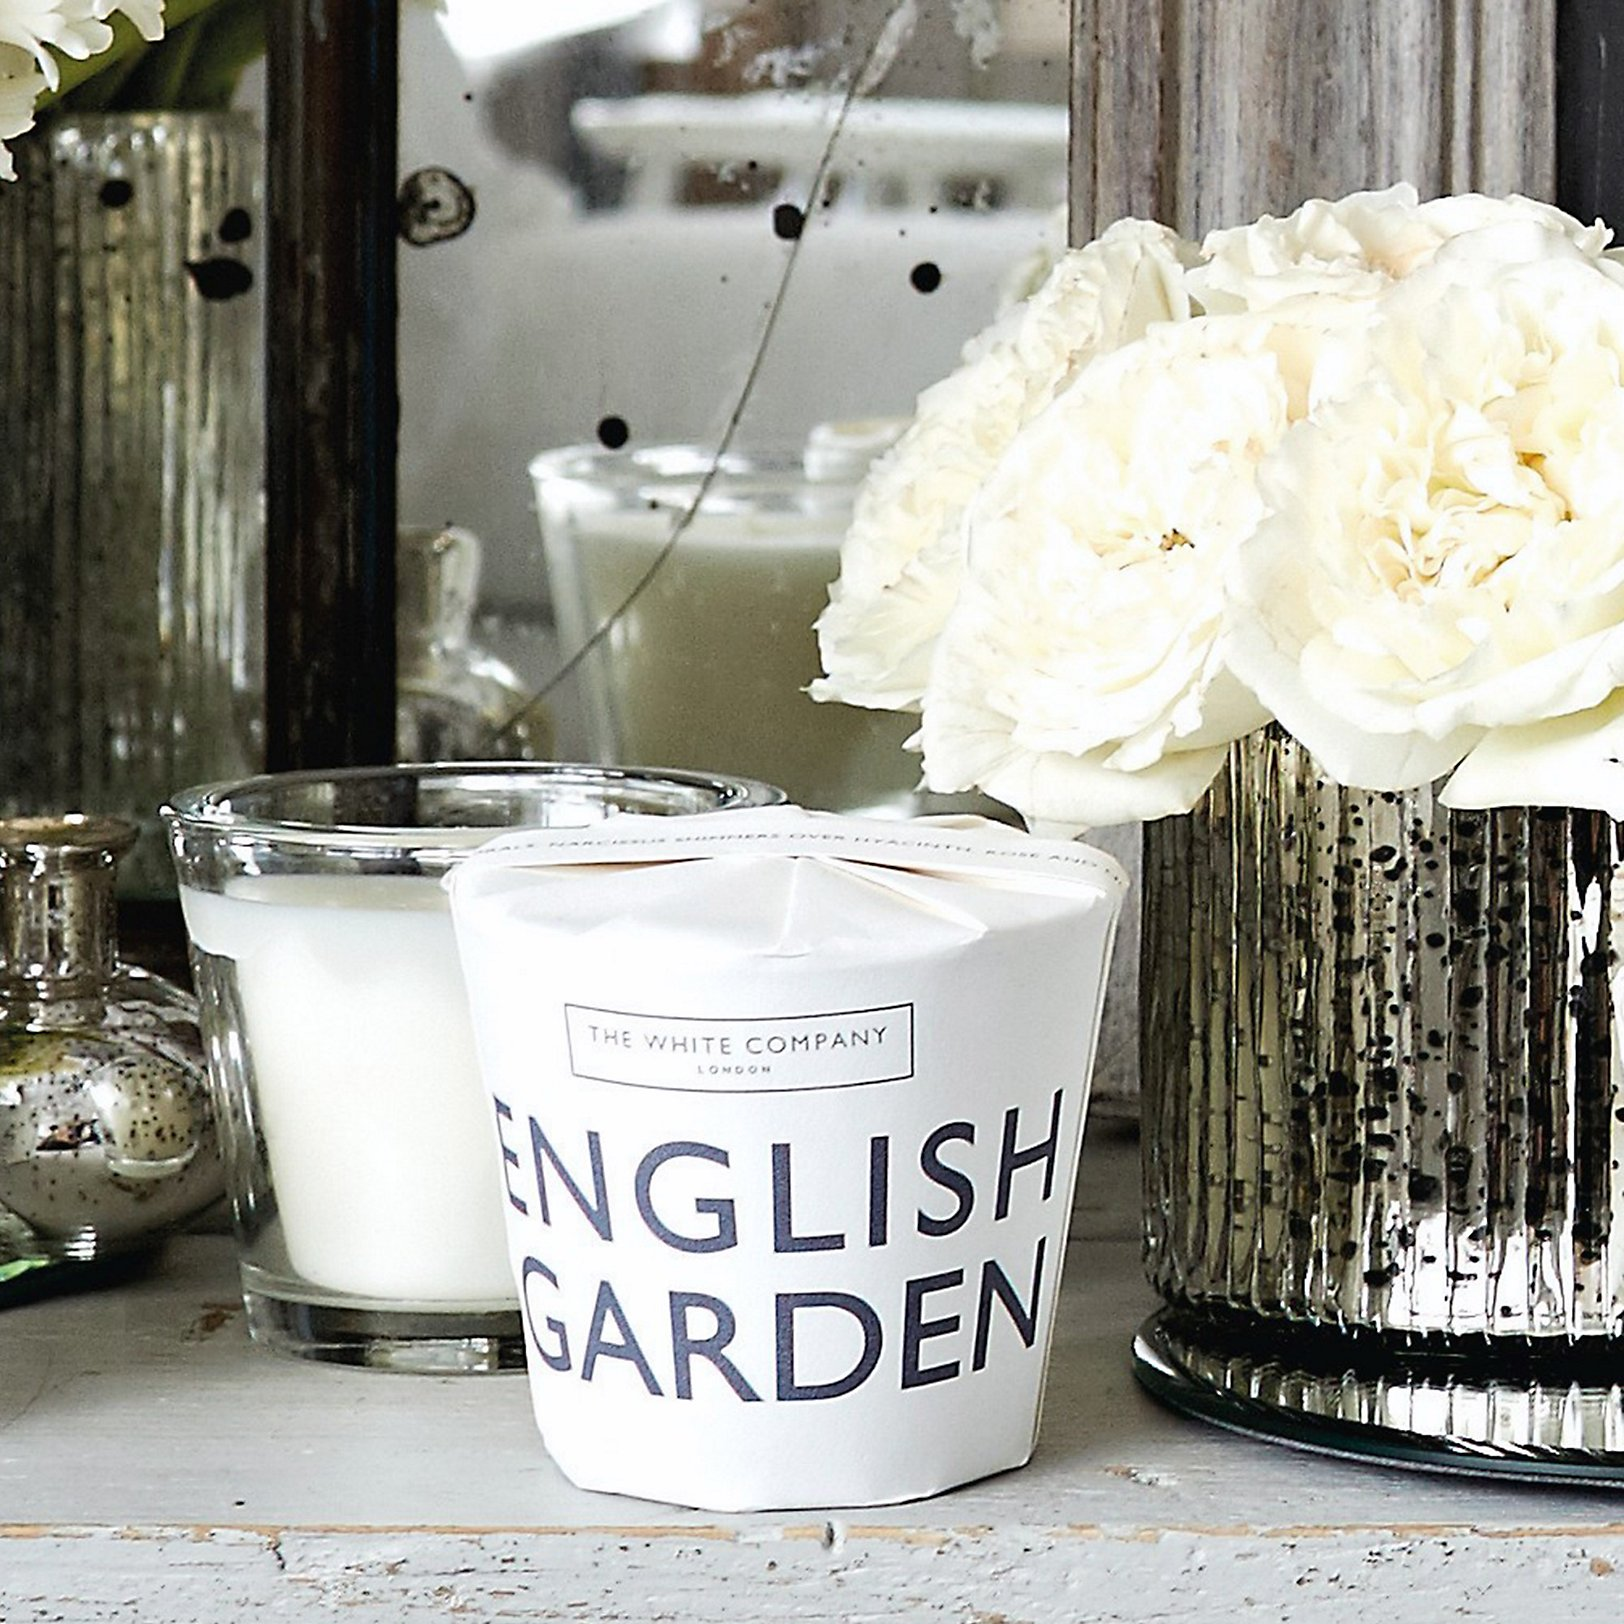 Picturesque English Garden Candle  Candles  Candles And Fragrance  The  With Entrancing View Full Size Image With Endearing Garden Terracing Ideas Also Palm Beach Gardens To Miami In Addition Gardening Jobs London And Garden Frame As Well As Herb Garden Tower Additionally National Gallery Of Art Sculpture Garden From Usthewhitecompanycom With   Entrancing English Garden Candle  Candles  Candles And Fragrance  The  With Endearing View Full Size Image And Picturesque Garden Terracing Ideas Also Palm Beach Gardens To Miami In Addition Gardening Jobs London From Usthewhitecompanycom